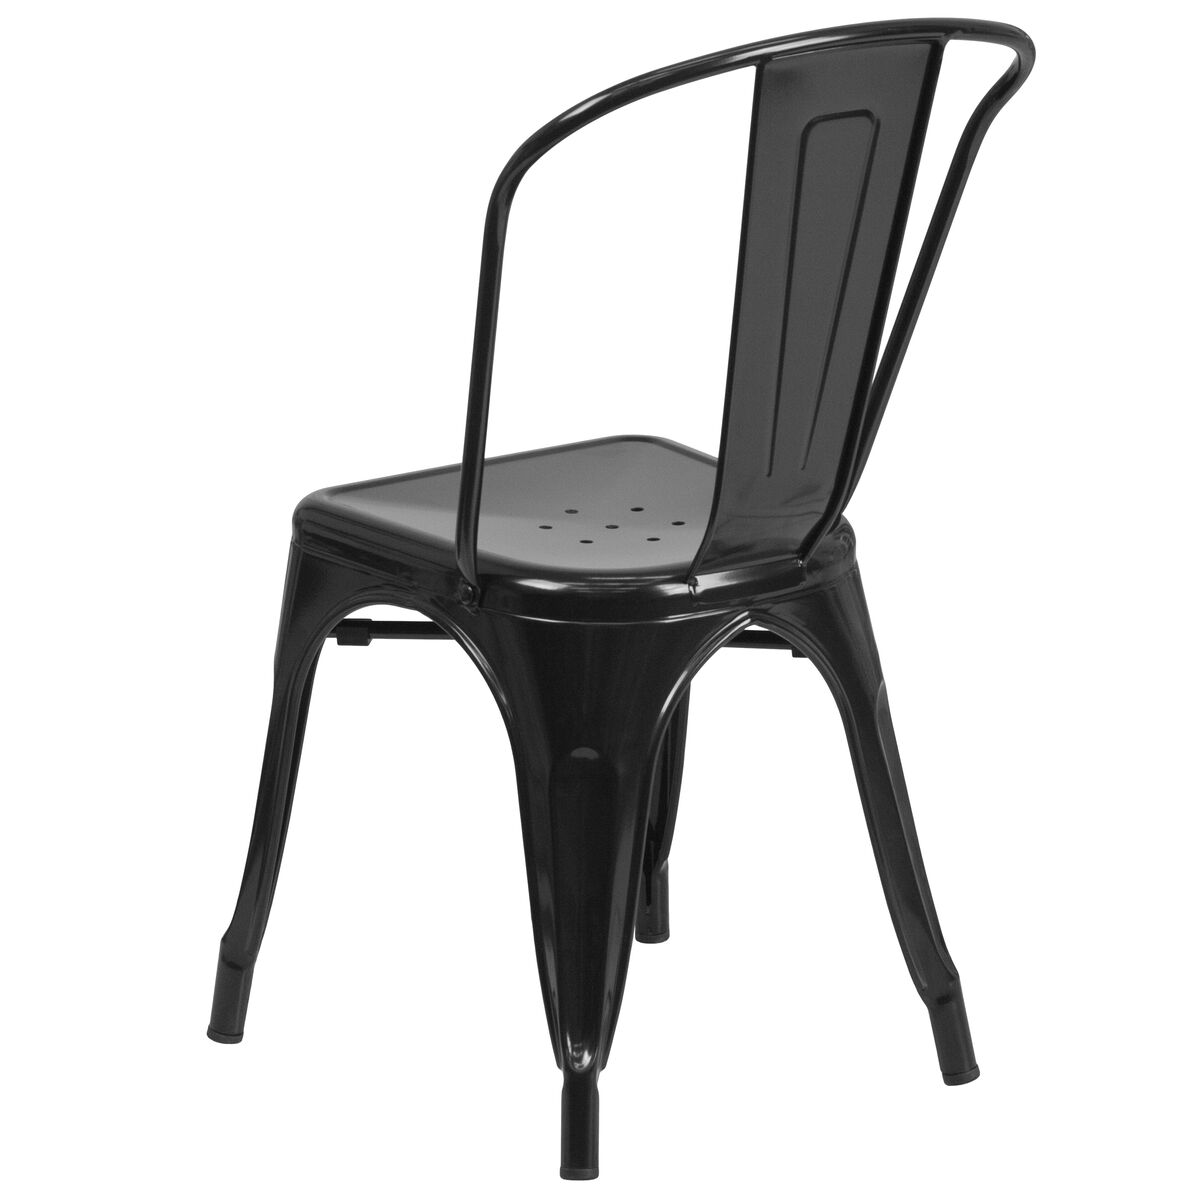 outdoor metal chair. Our Black Metal Indoor-Outdoor Stackable Chair Is On Sale Now. Outdoor